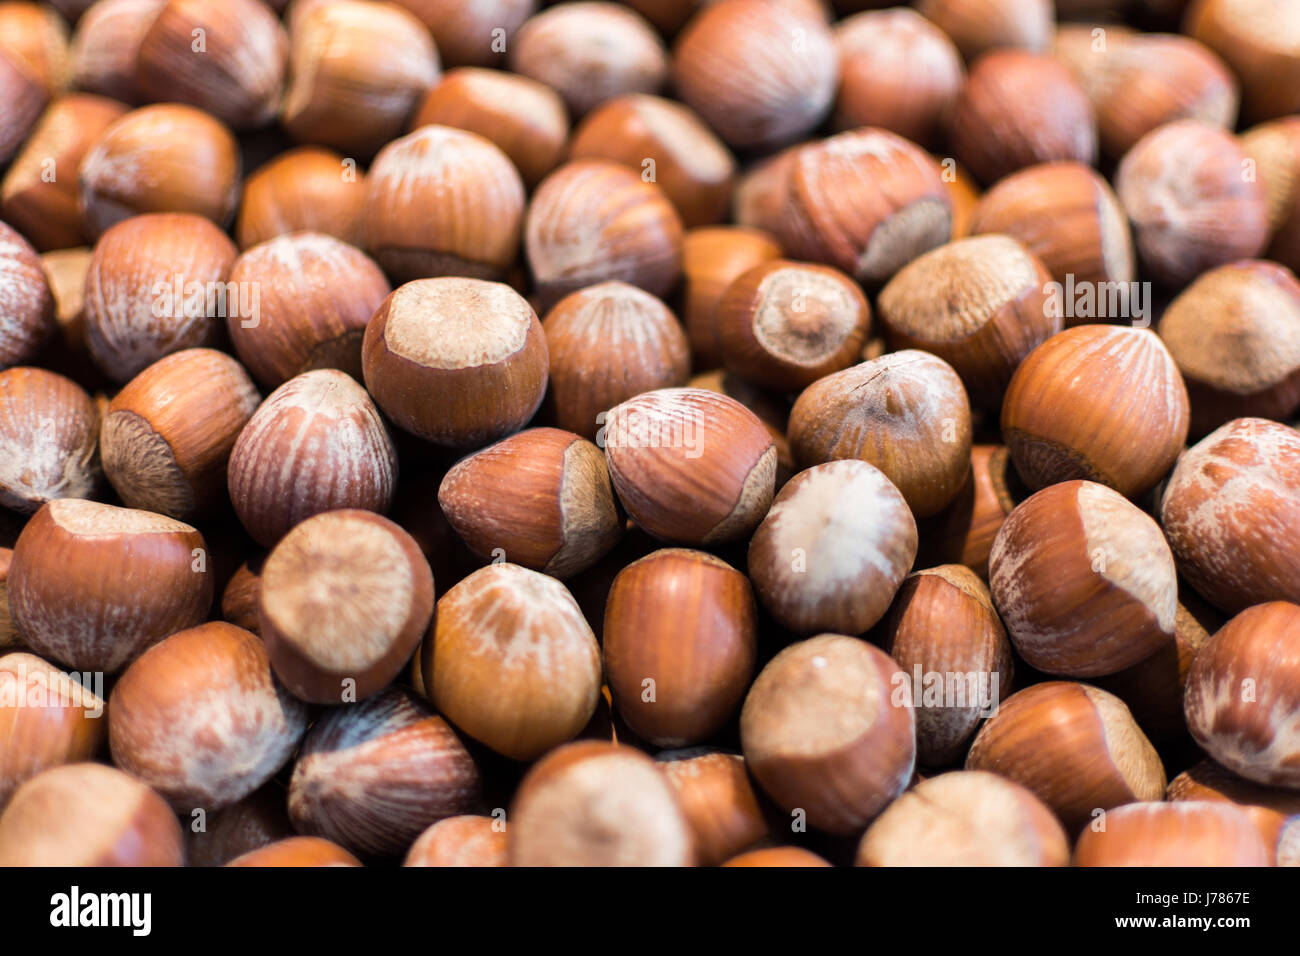 Organic Hazelnut Background. Stack of Raw Hazelnuts Close Up. - Stock Image